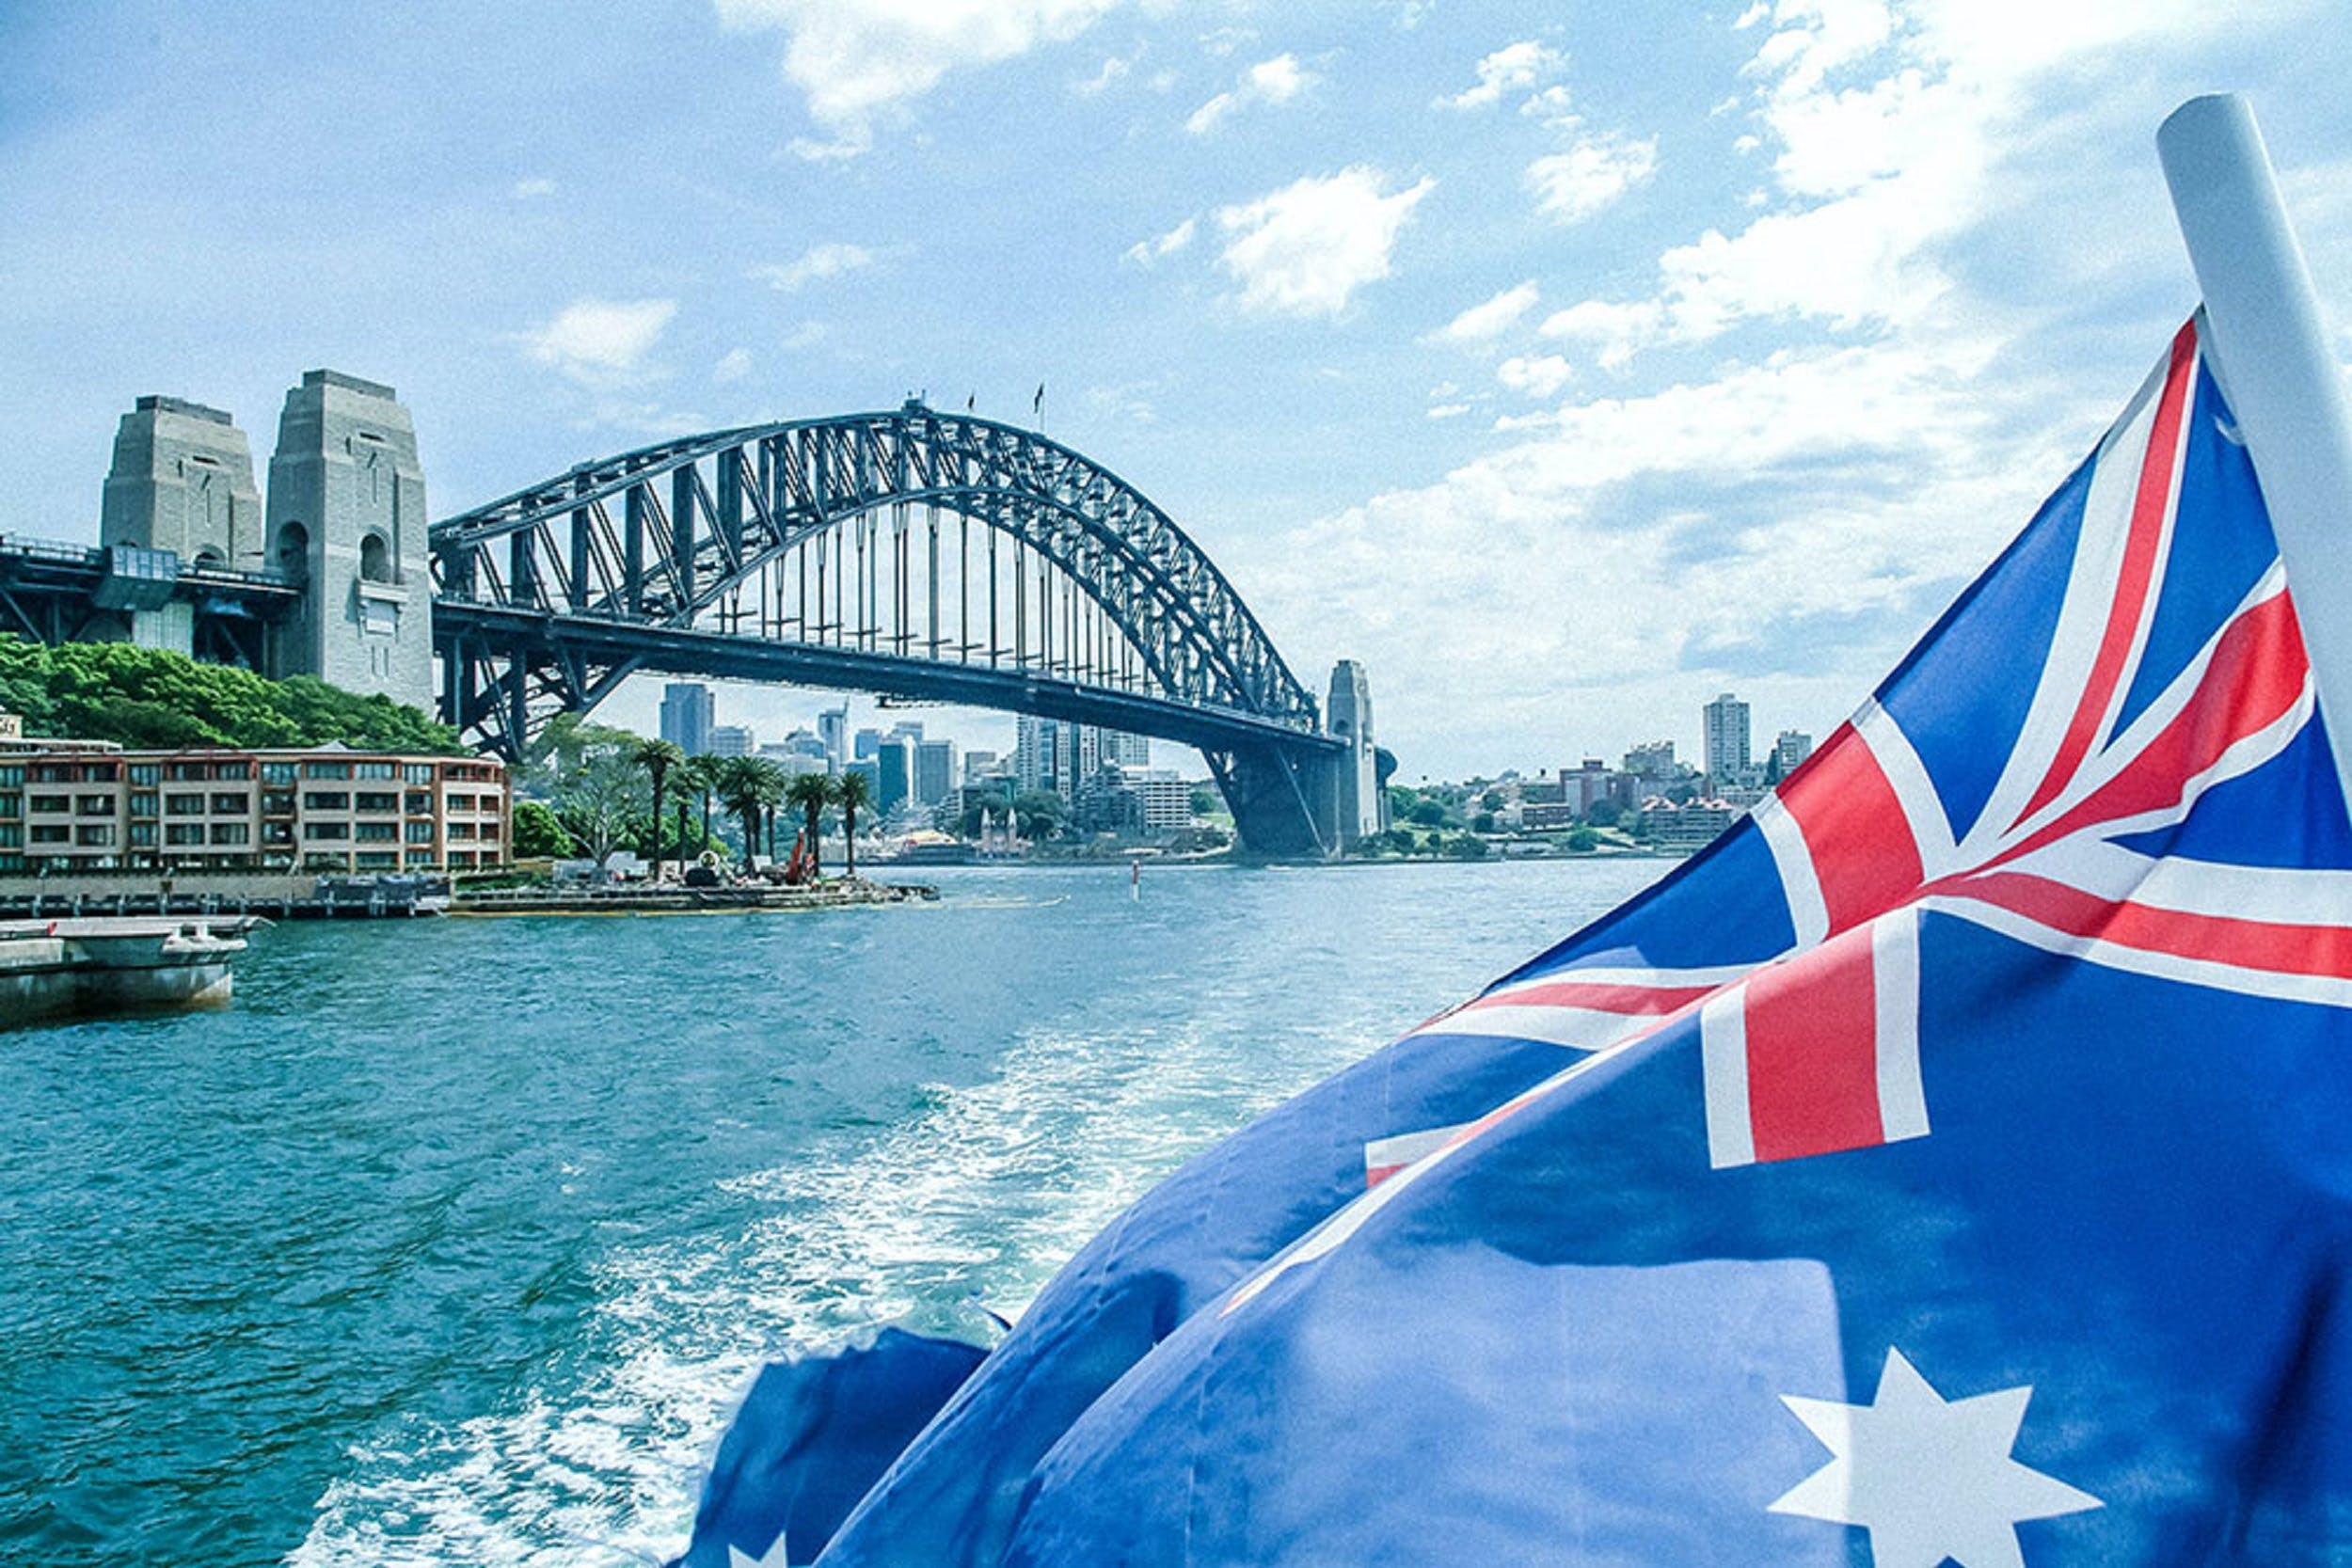 Australia Day Lunch and Dinner Cruises On Sydney Harbour with Sydney Showboats - Accommodation Fremantle